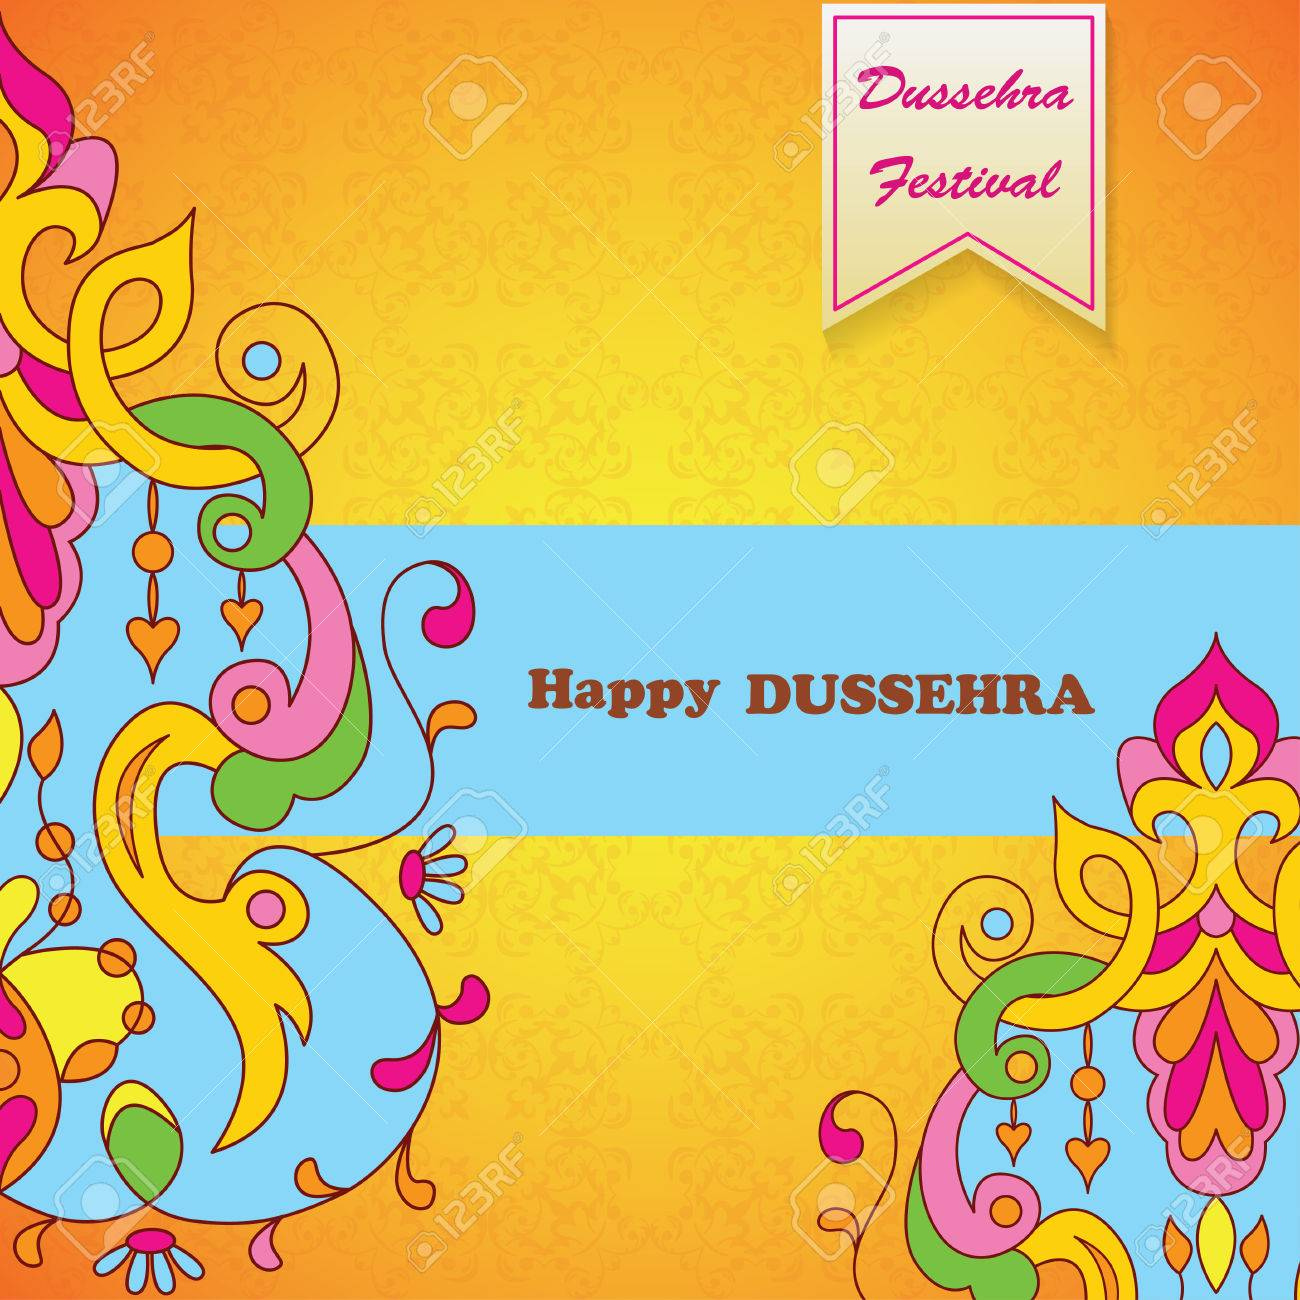 Dussehra festival backgroundeeting card for dussehra celebration dussehra festival backgroundeeting card for dussehra celebration in india stock vector 63810256 m4hsunfo